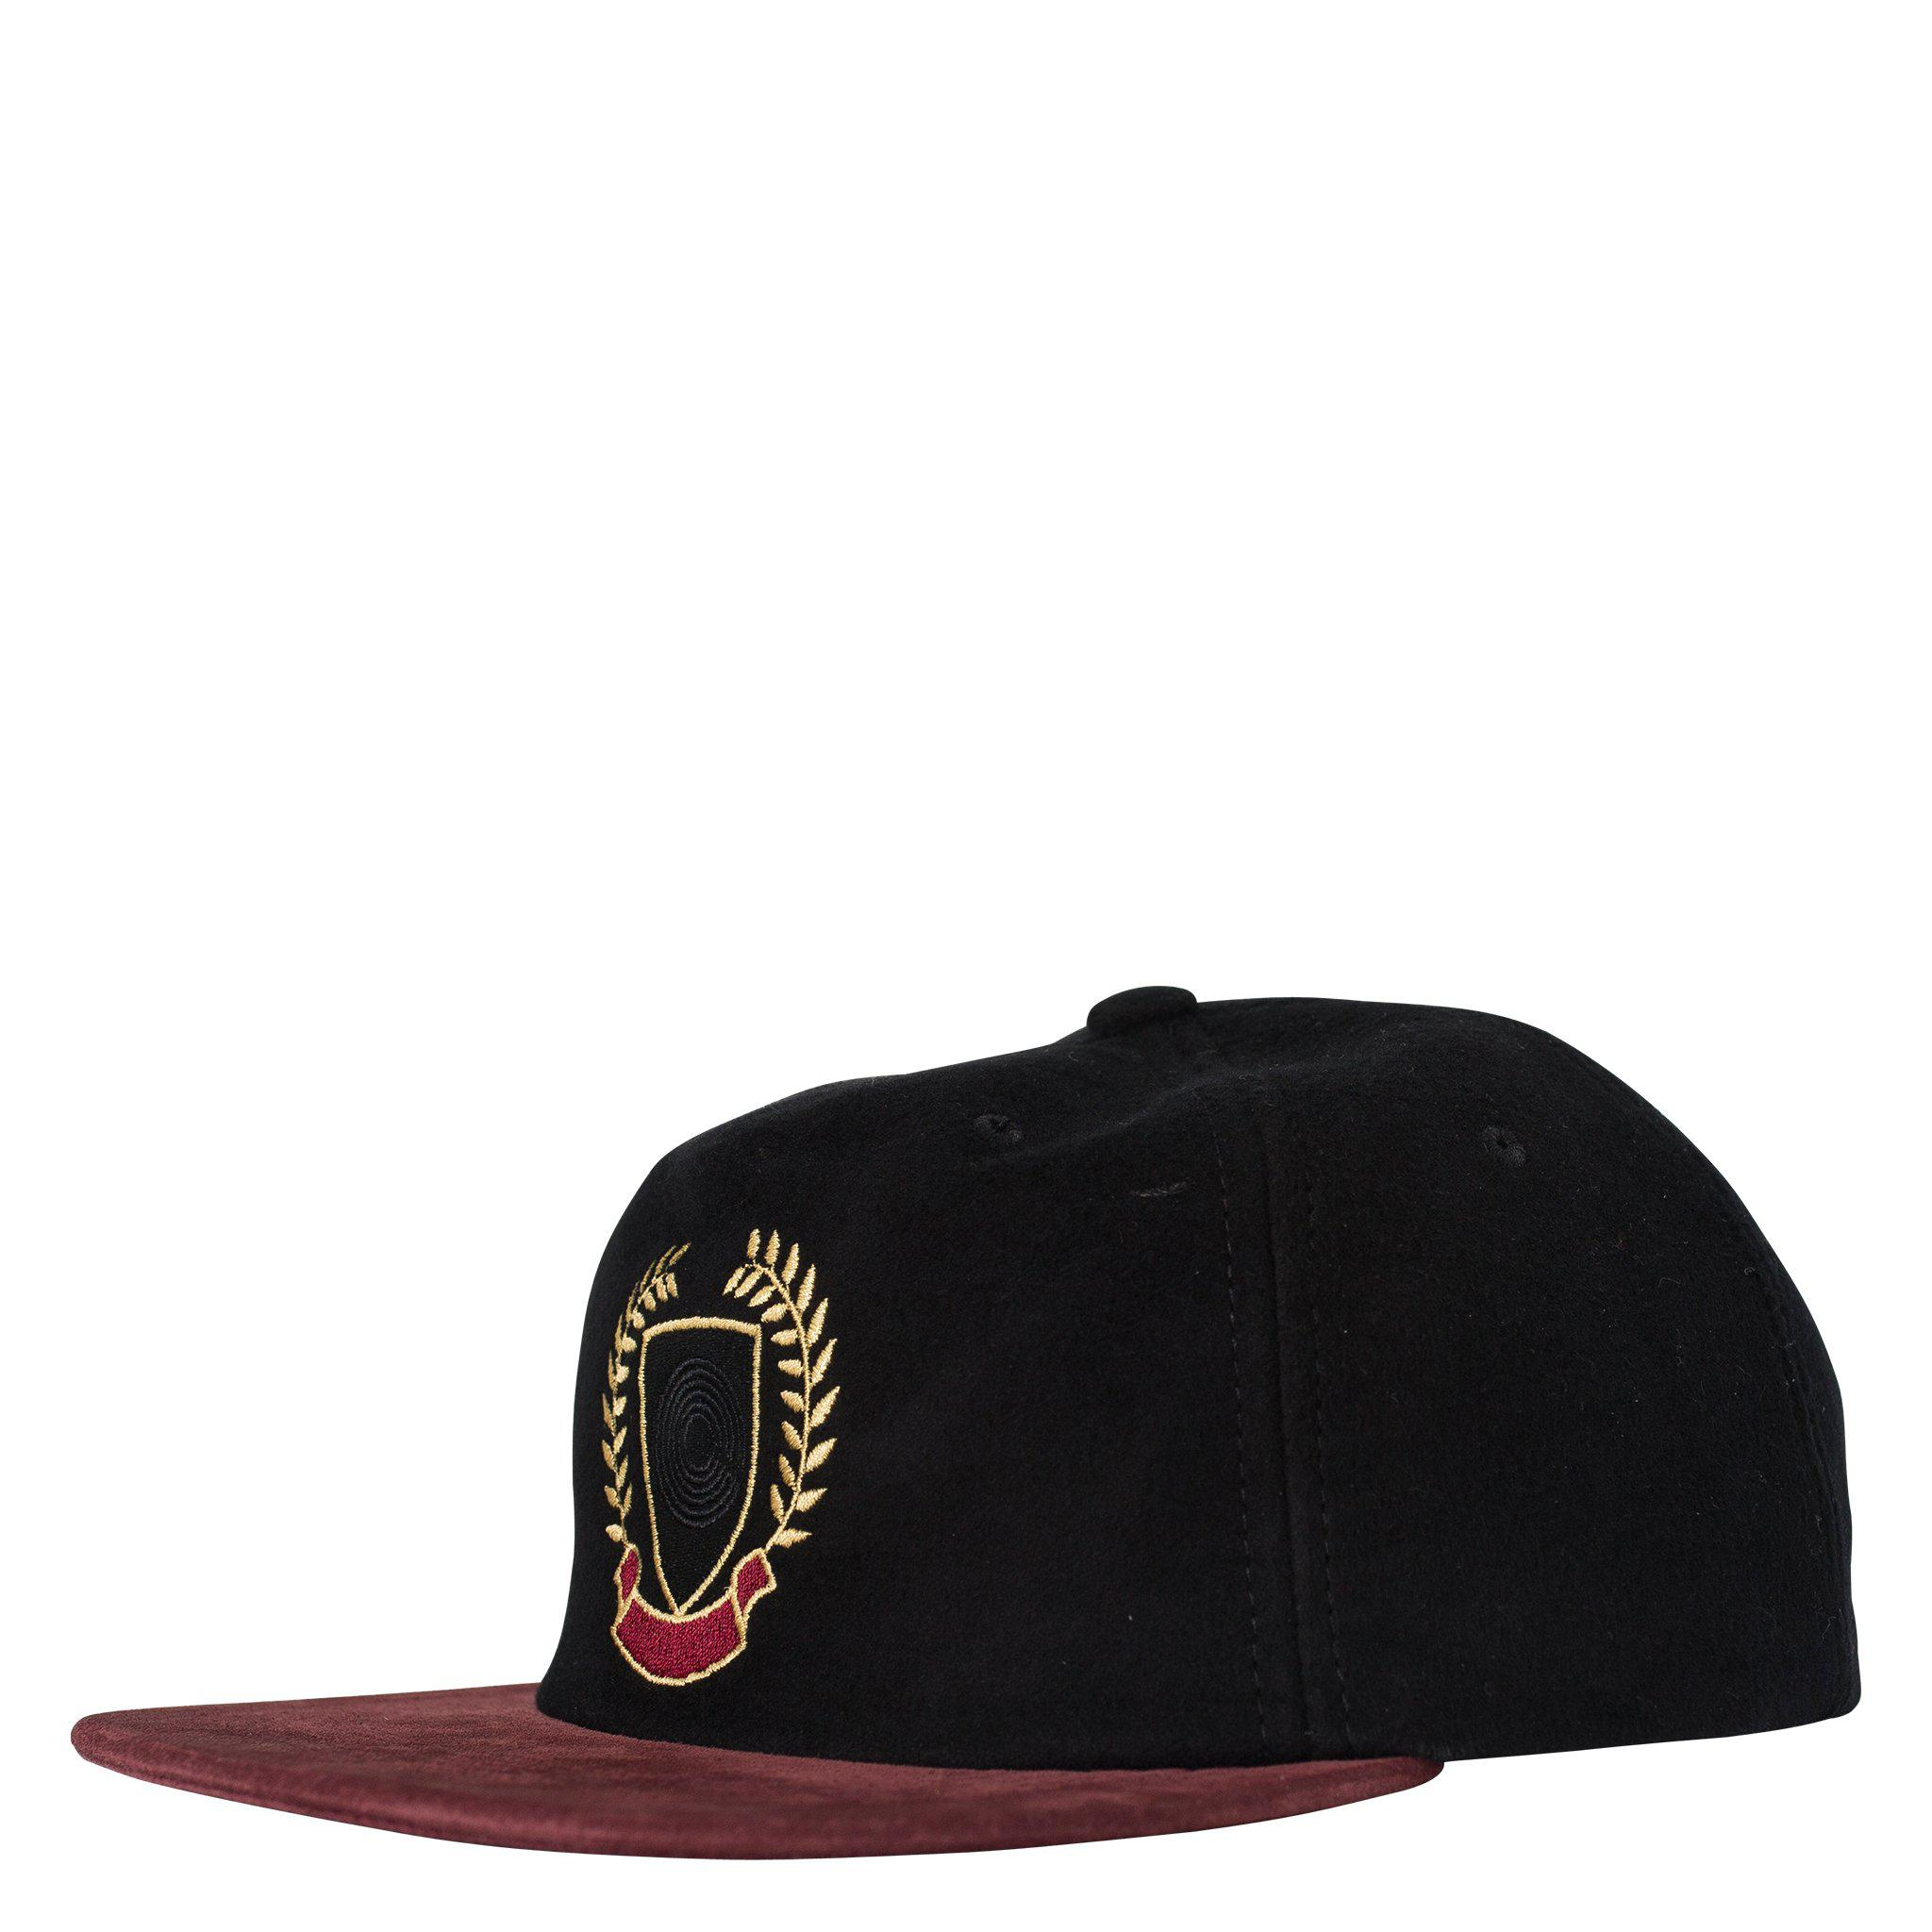 7eacf51dd3695 Yeezy Contrast Brim Crest Snapback in Black for Men - Lyst